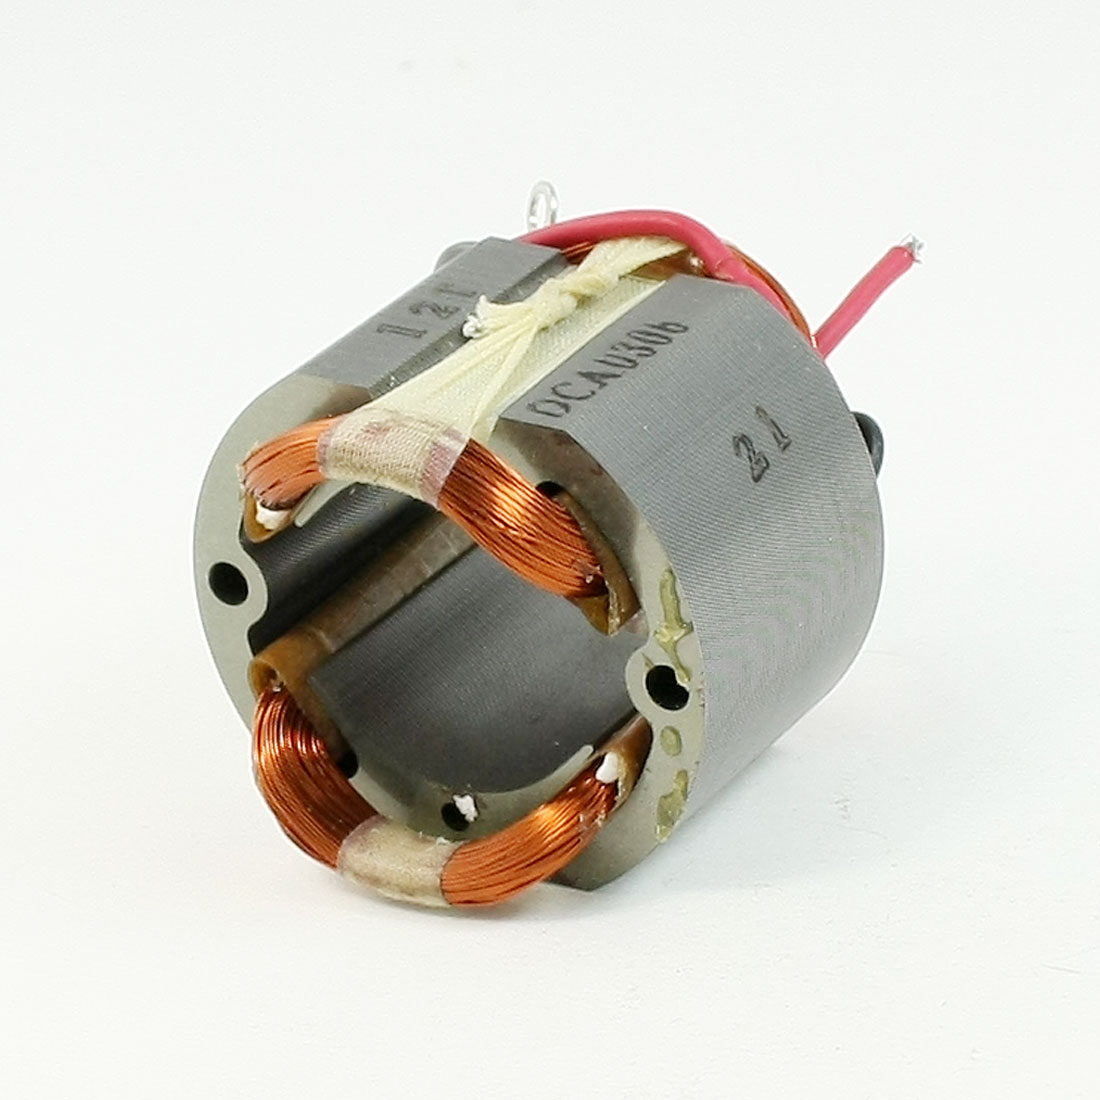 AC 220V Copper 32mm Rotor Core Motor Stator AC 220V for Hitachi 12T Impact Drill